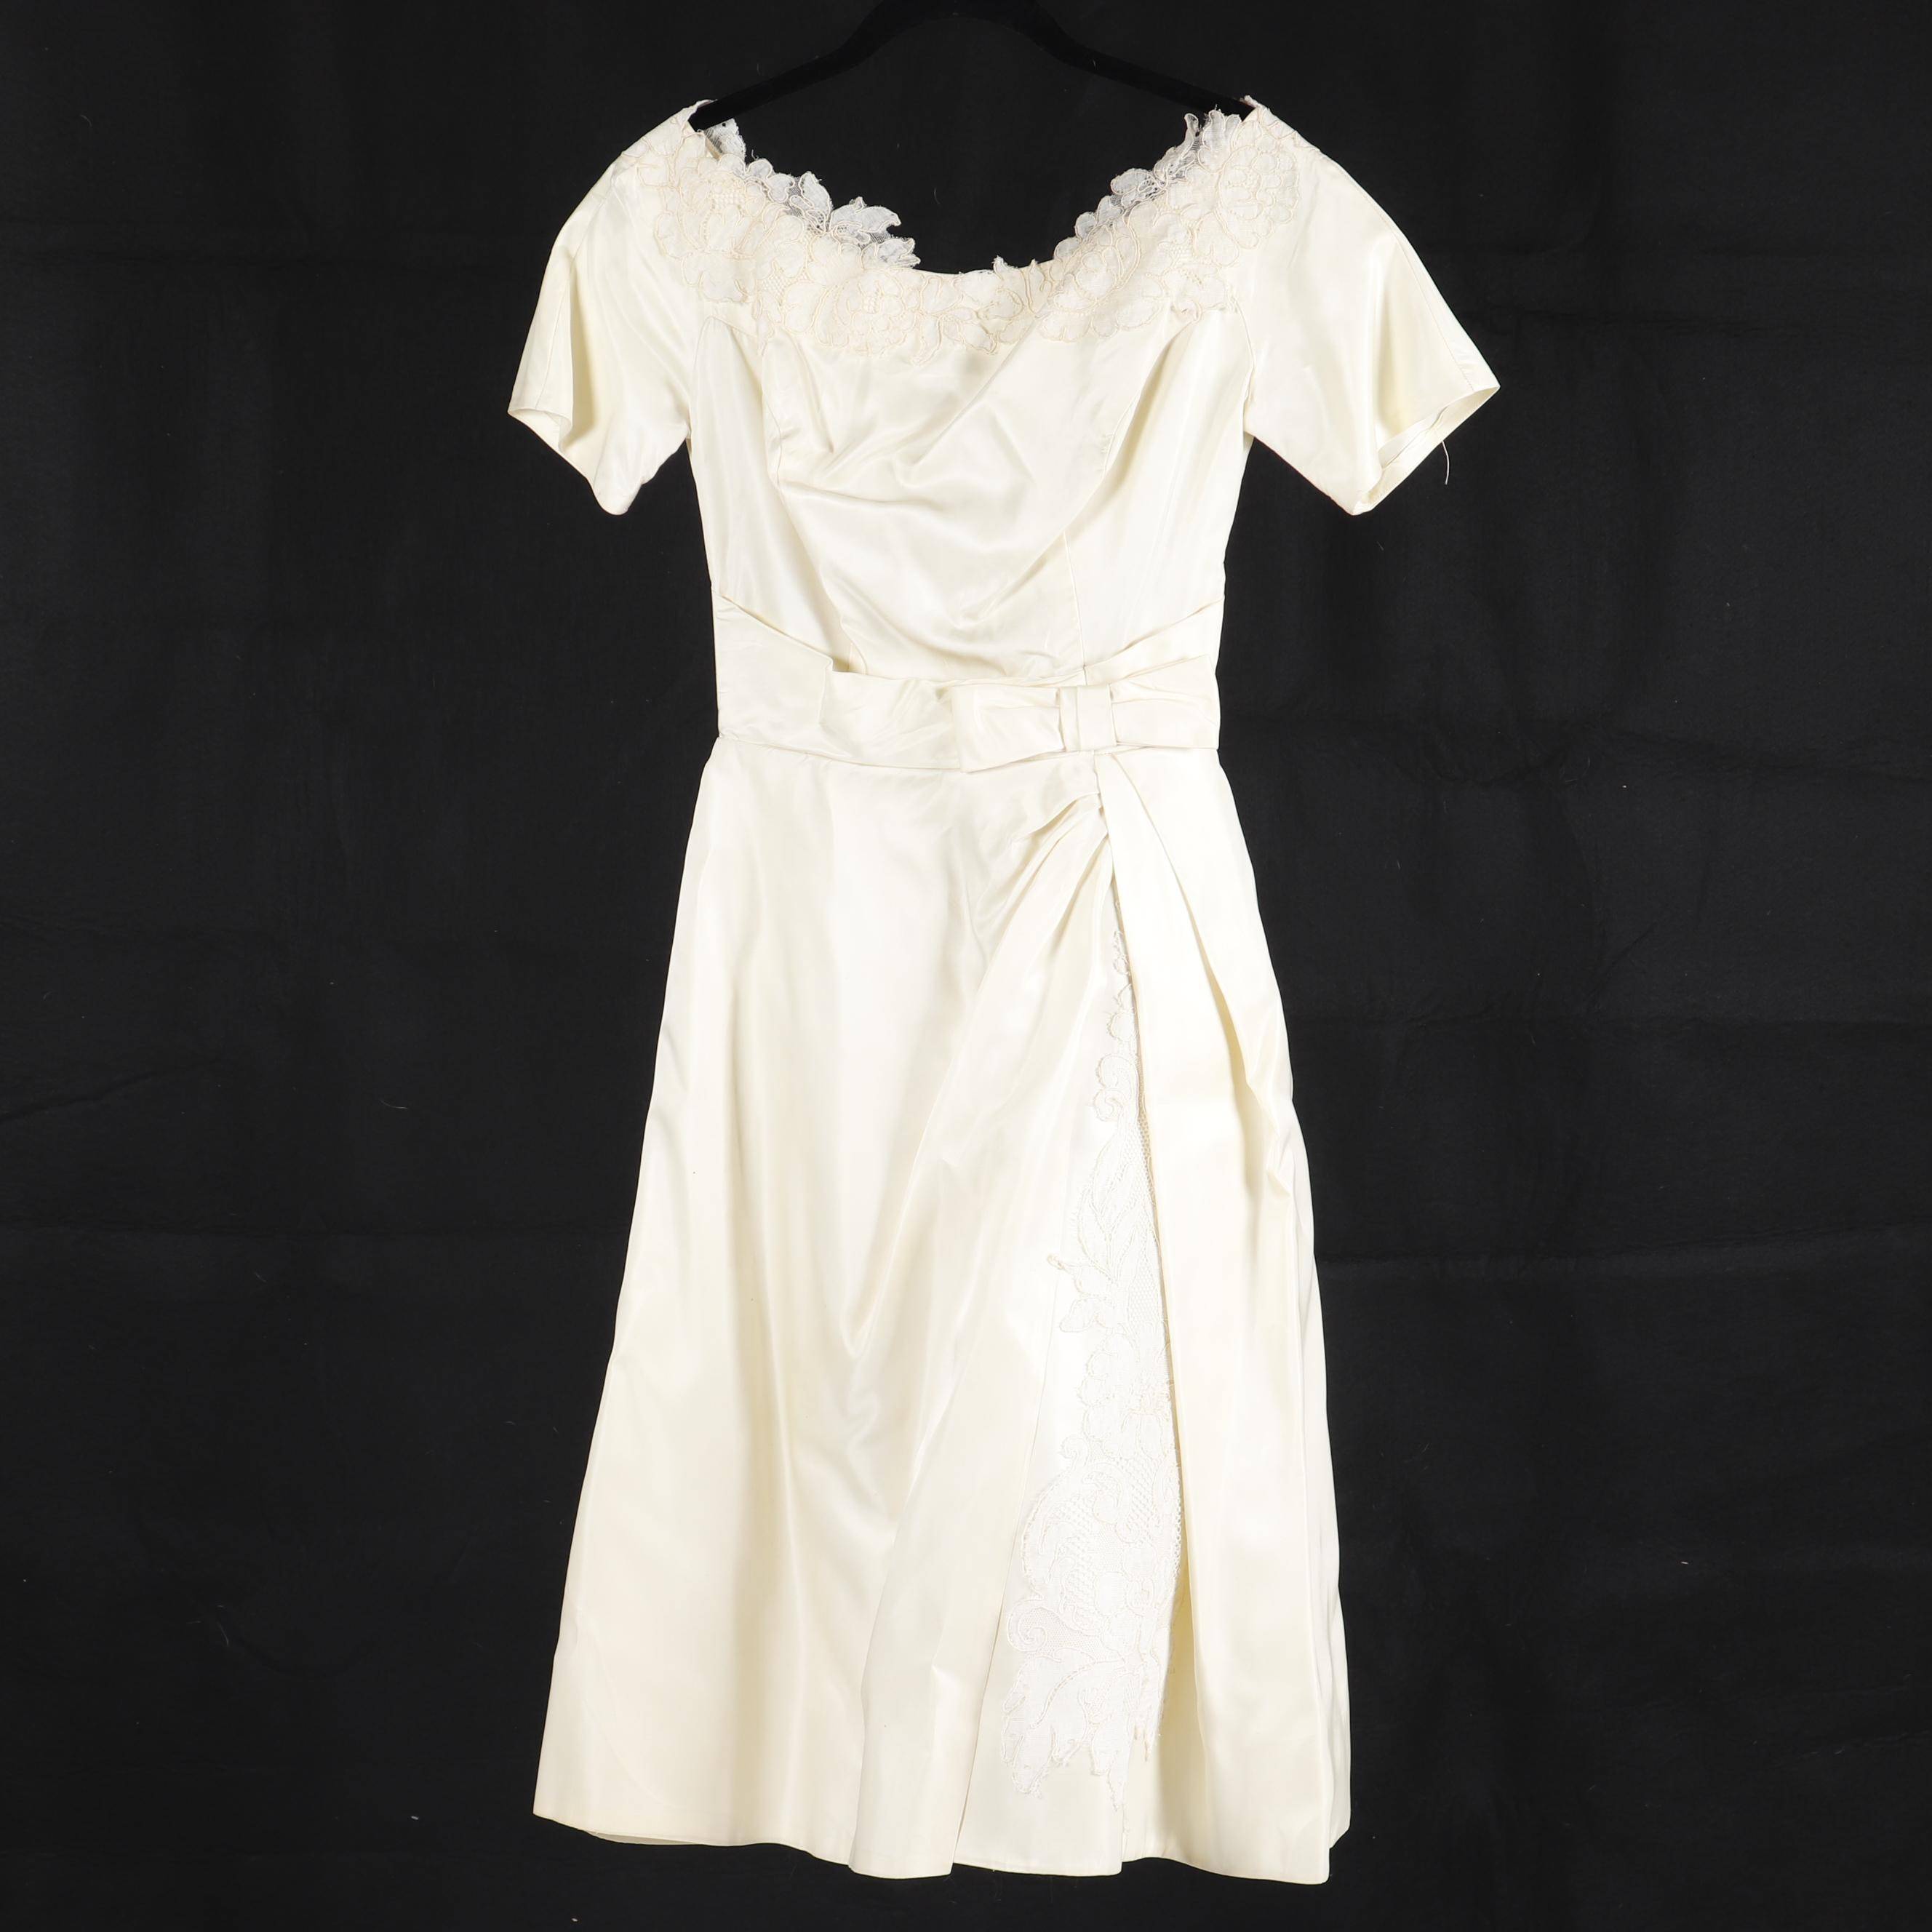 Vintage Off-White Handmade Satin Occasion Dress with Lace Appliqué